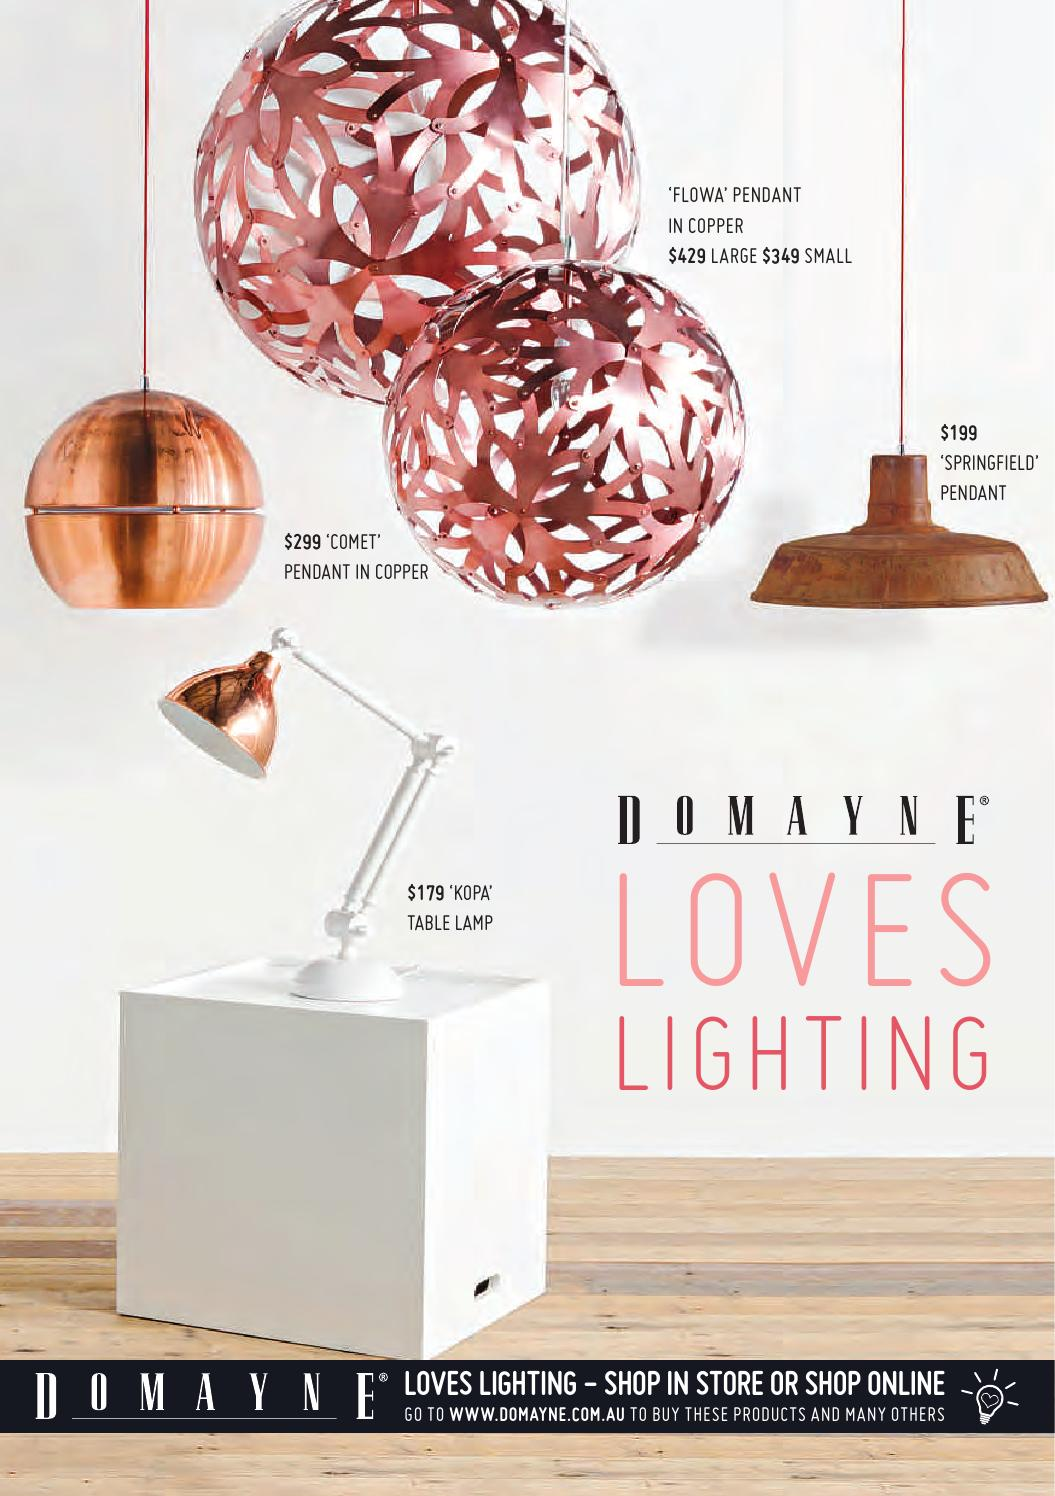 Domayne Loves Lighting By Issuu